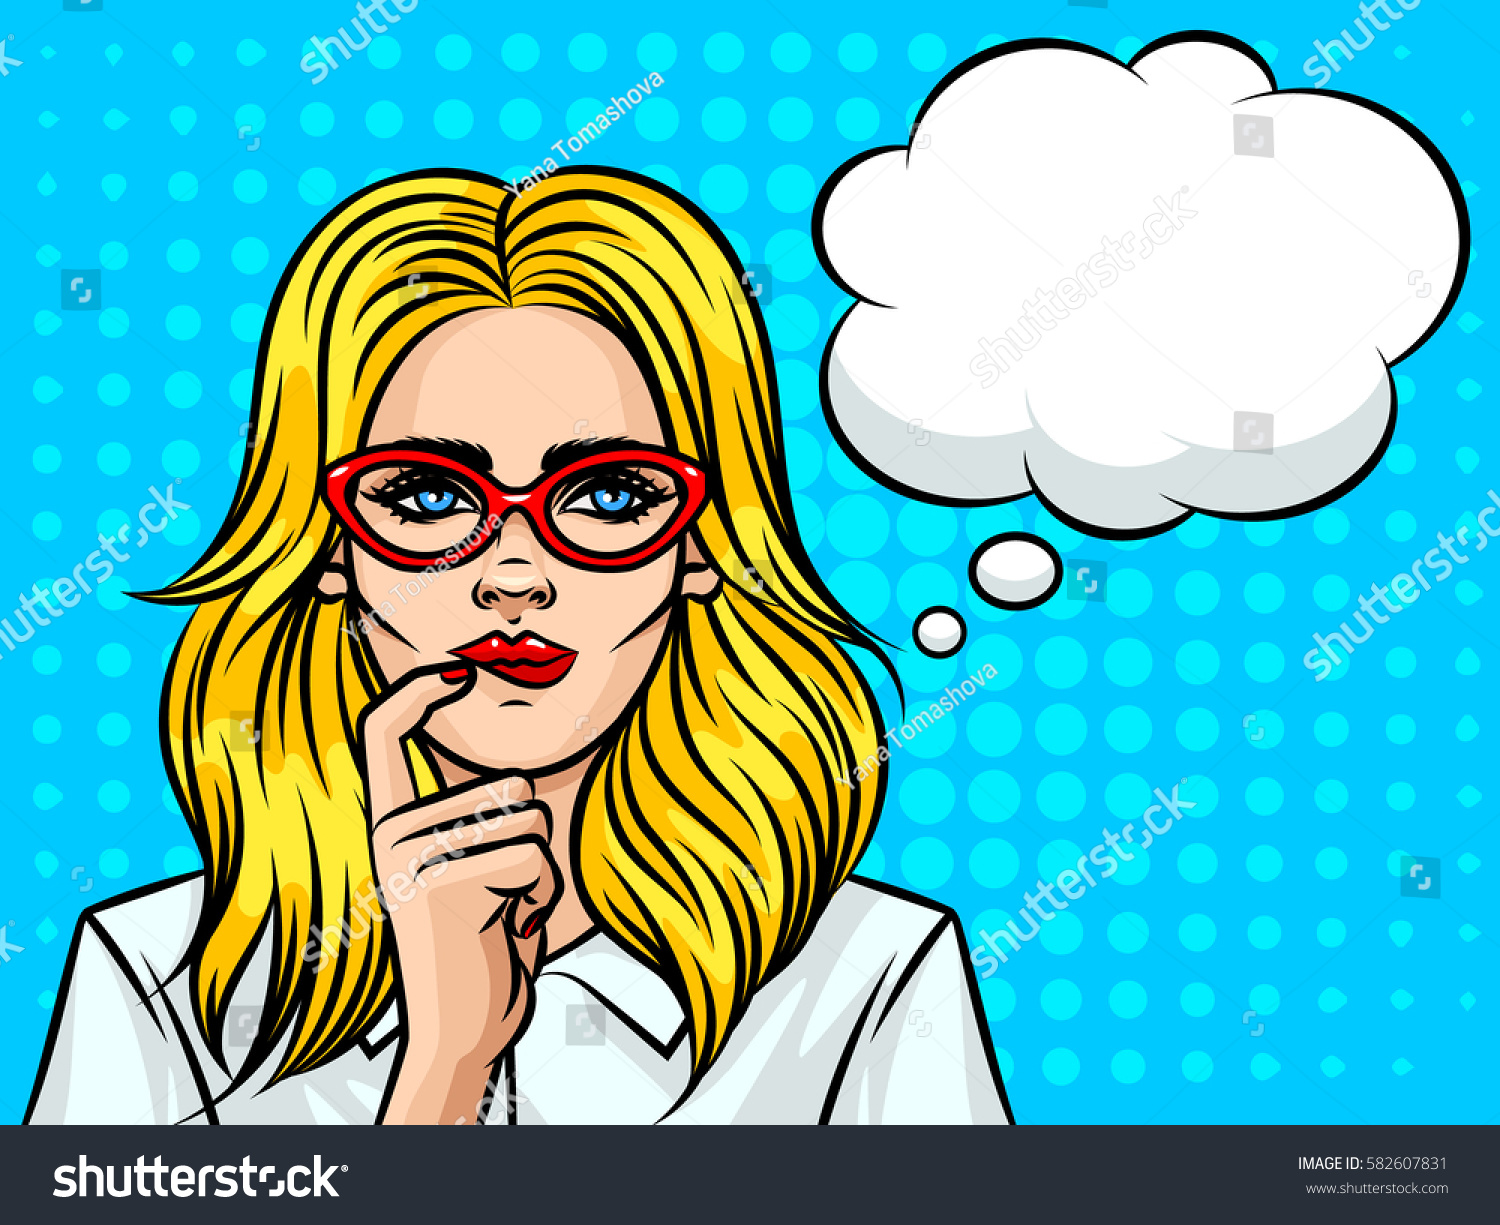 Young beautiful business woman  with speech bubble thinking about something. Girl with glasses the European type on background of pop art style